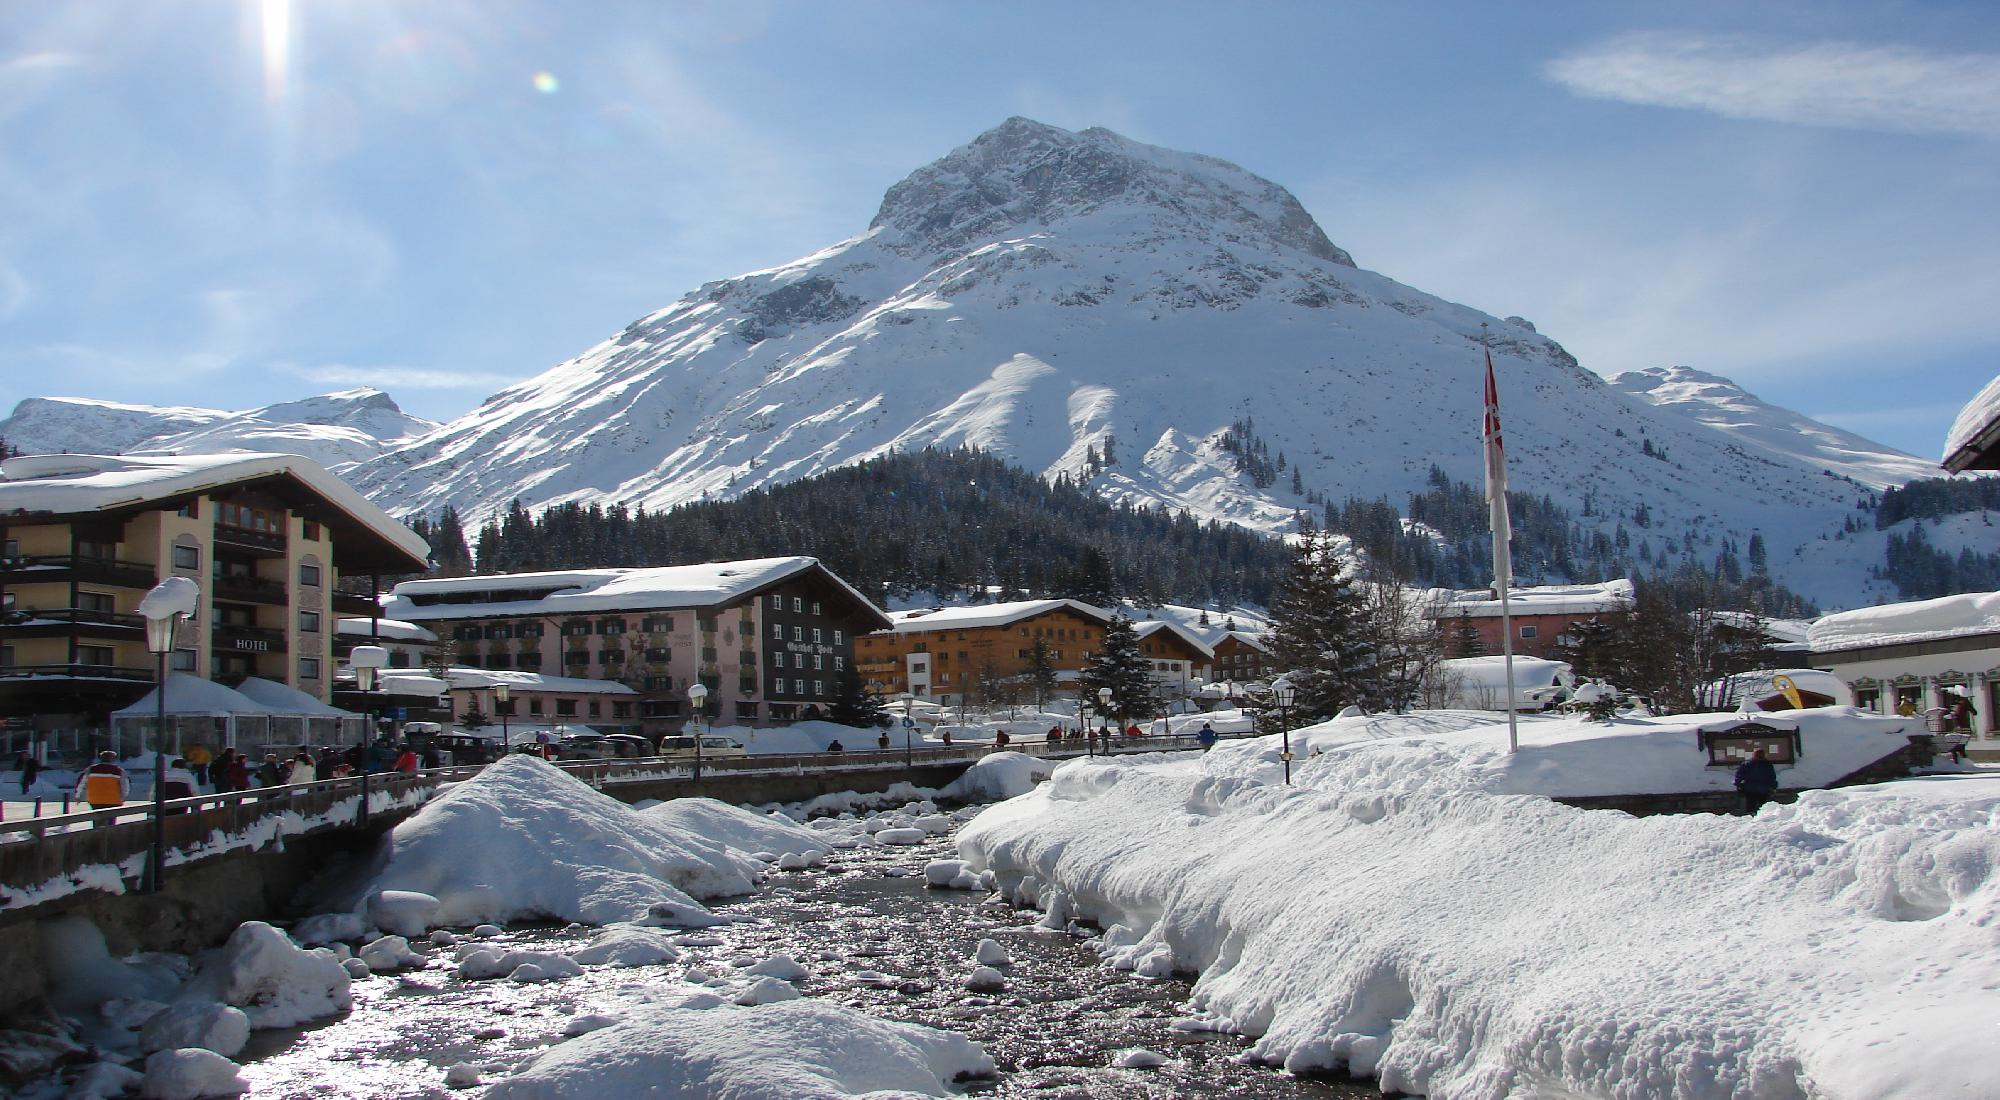 Immobilien - Pension in Lech am Arlberg, Lech am Arlberg